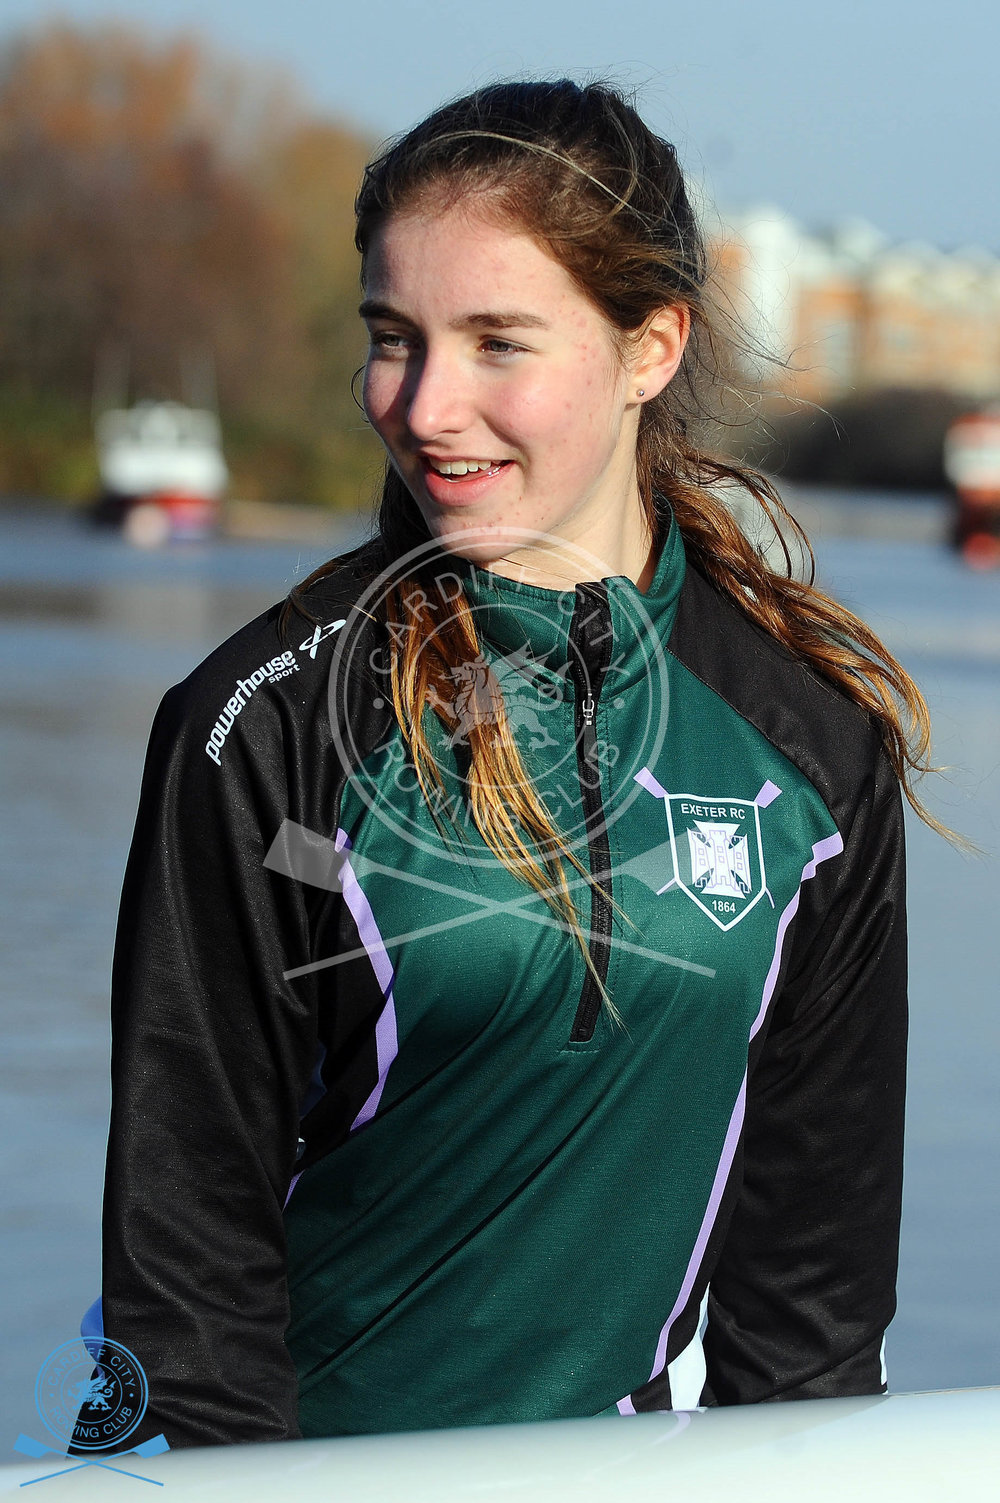 DW_280119_Cardiff_City_Rowing_358.jpg